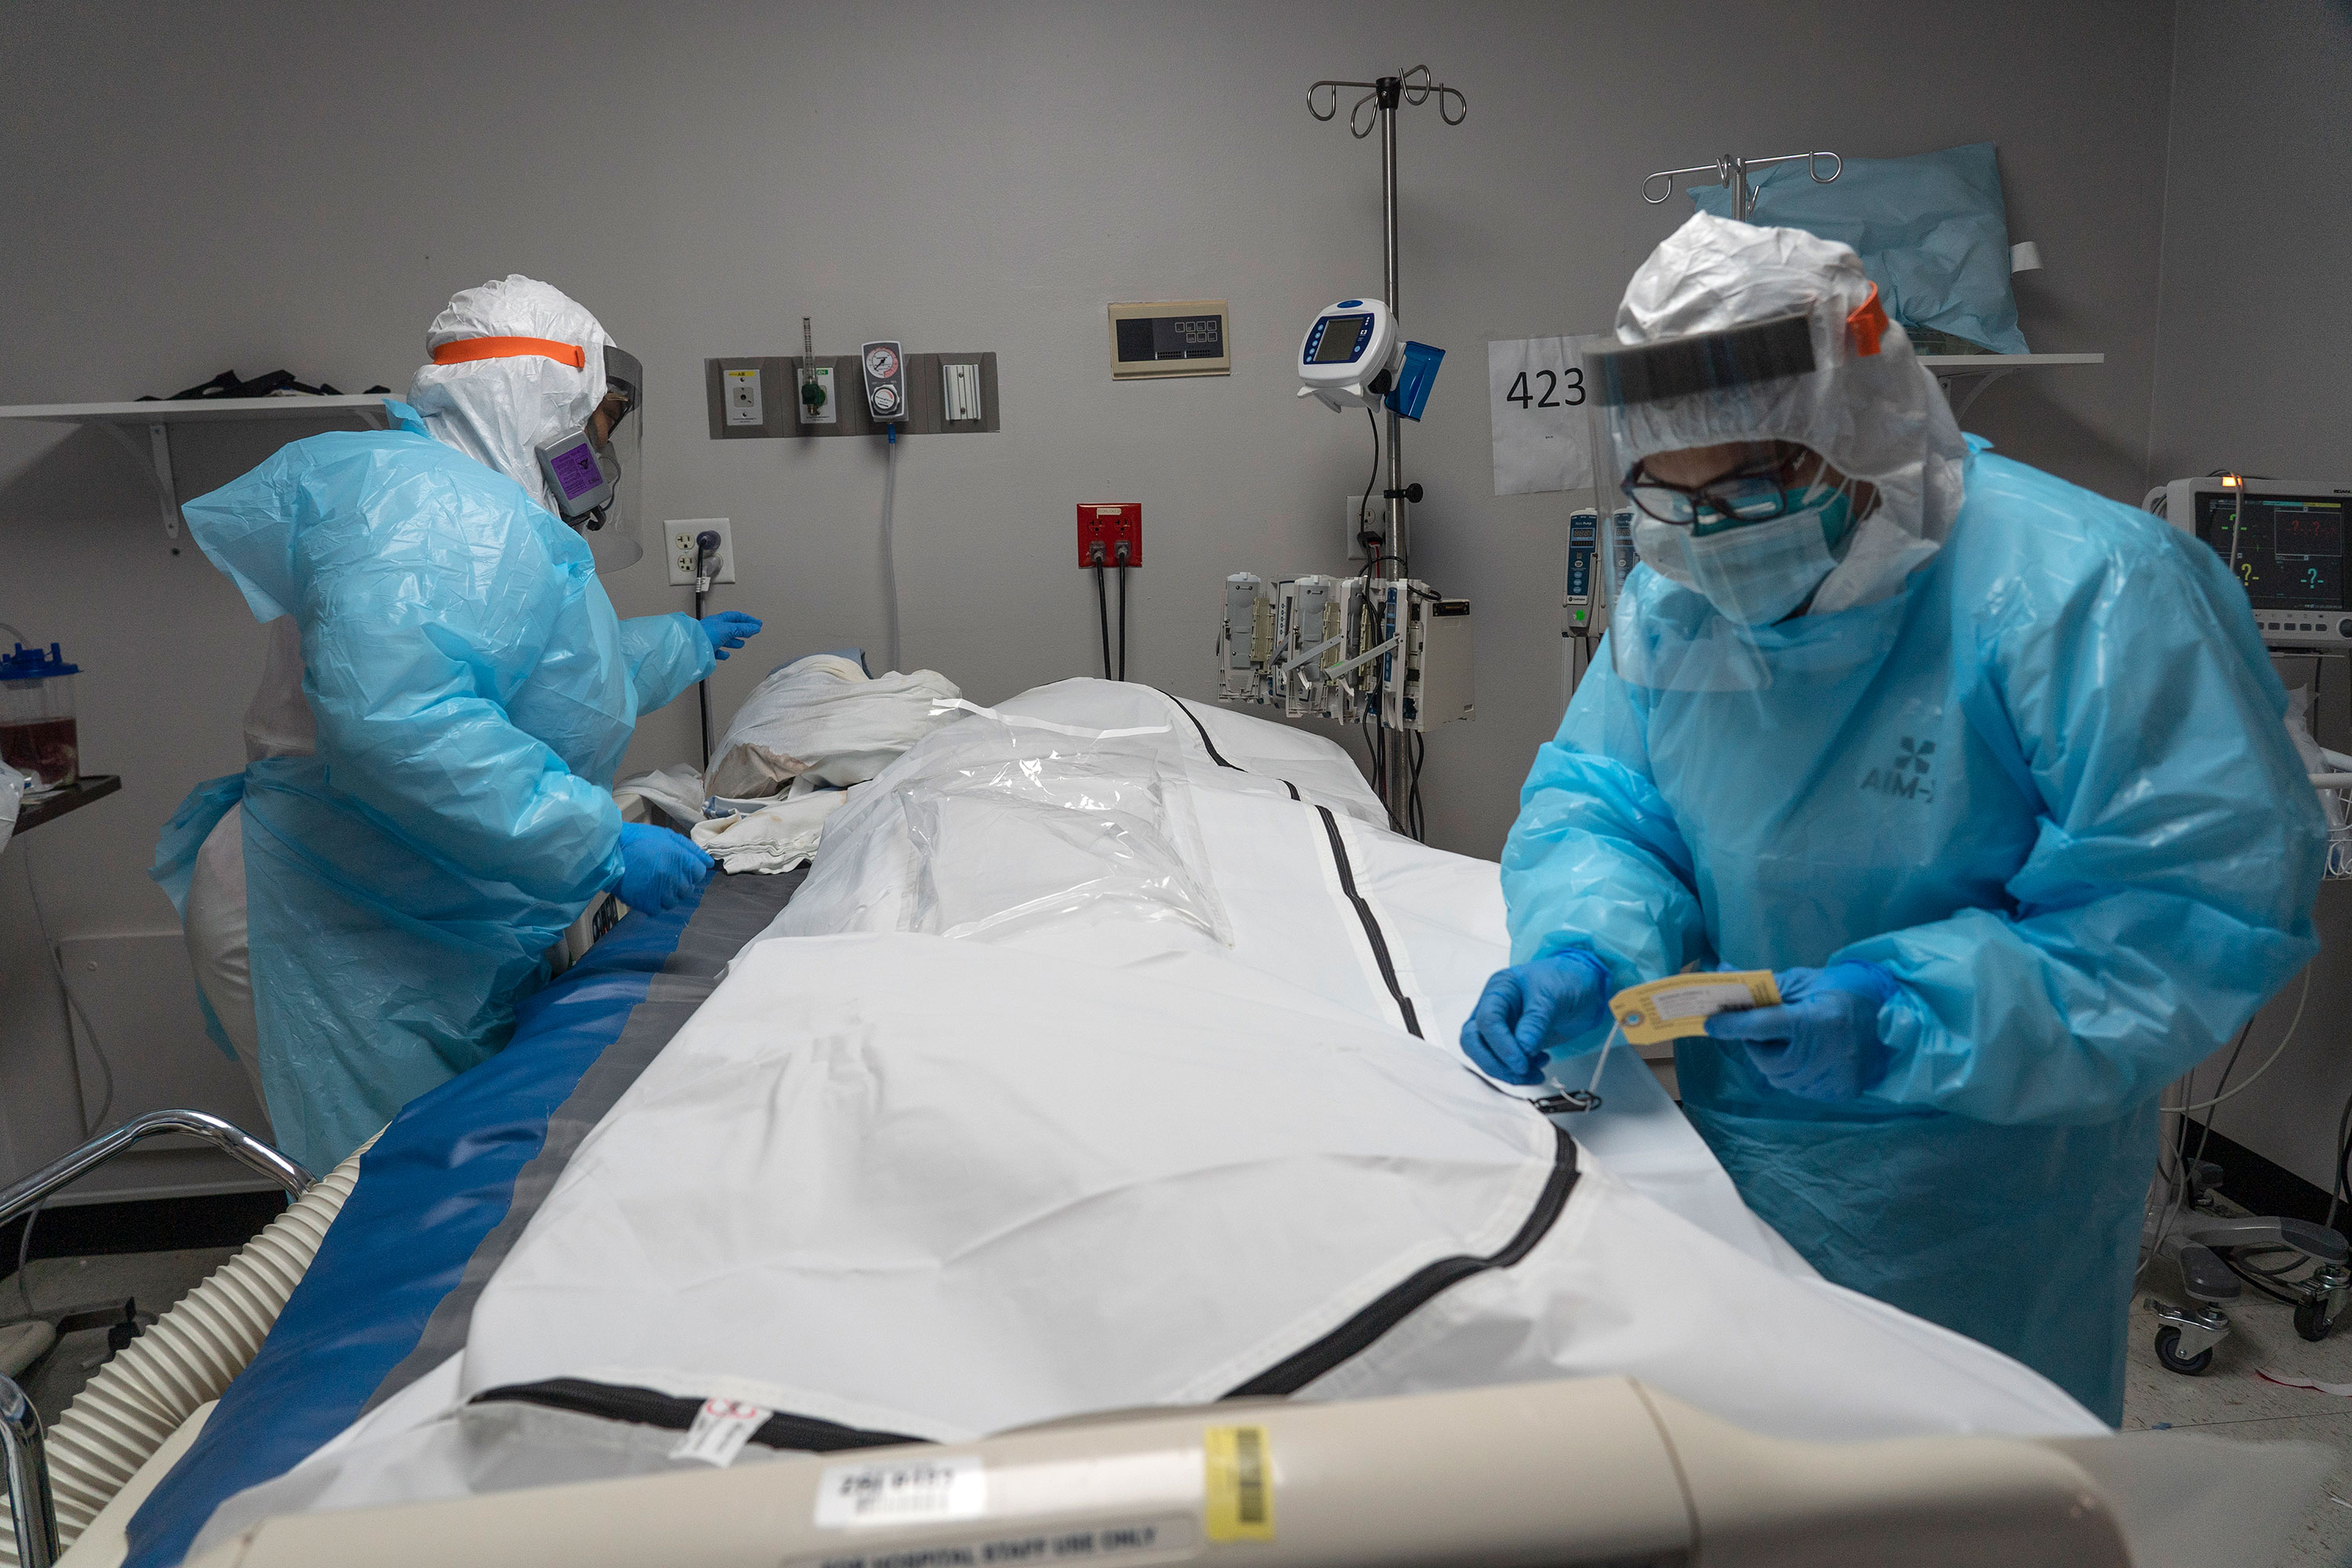 Medical staff members close the zipper of a body bag containing a deceased Covid-19 patient in the intensive care unit of United Memorial Medical Center on November 25 in Houston, Texas.